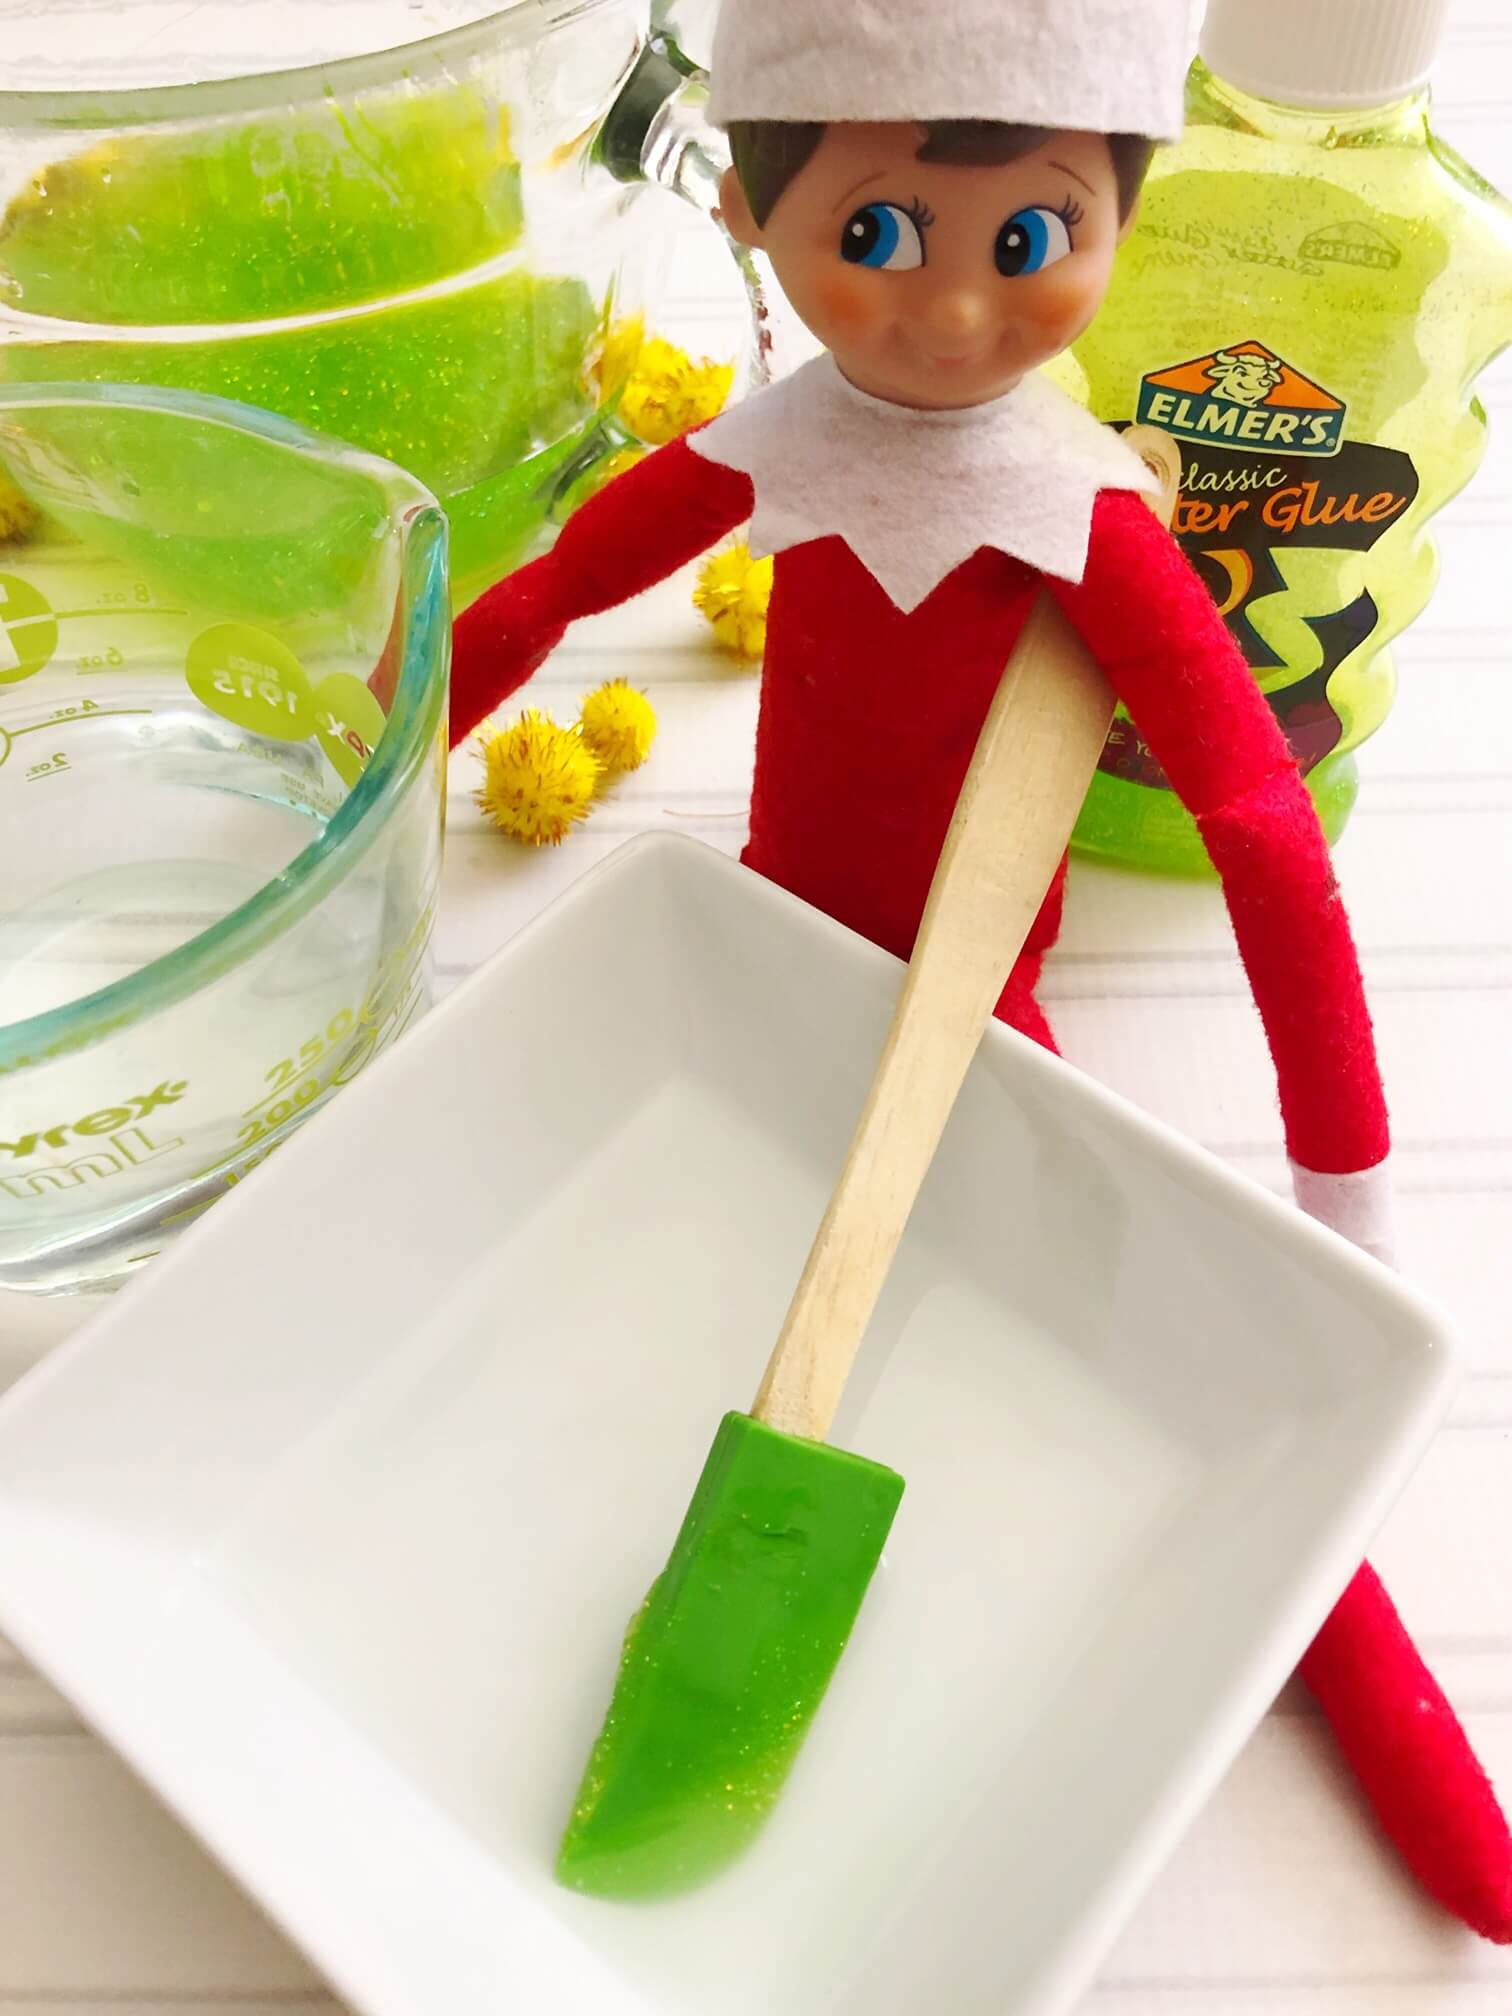 Elf on the Shelf getting ready to make slime